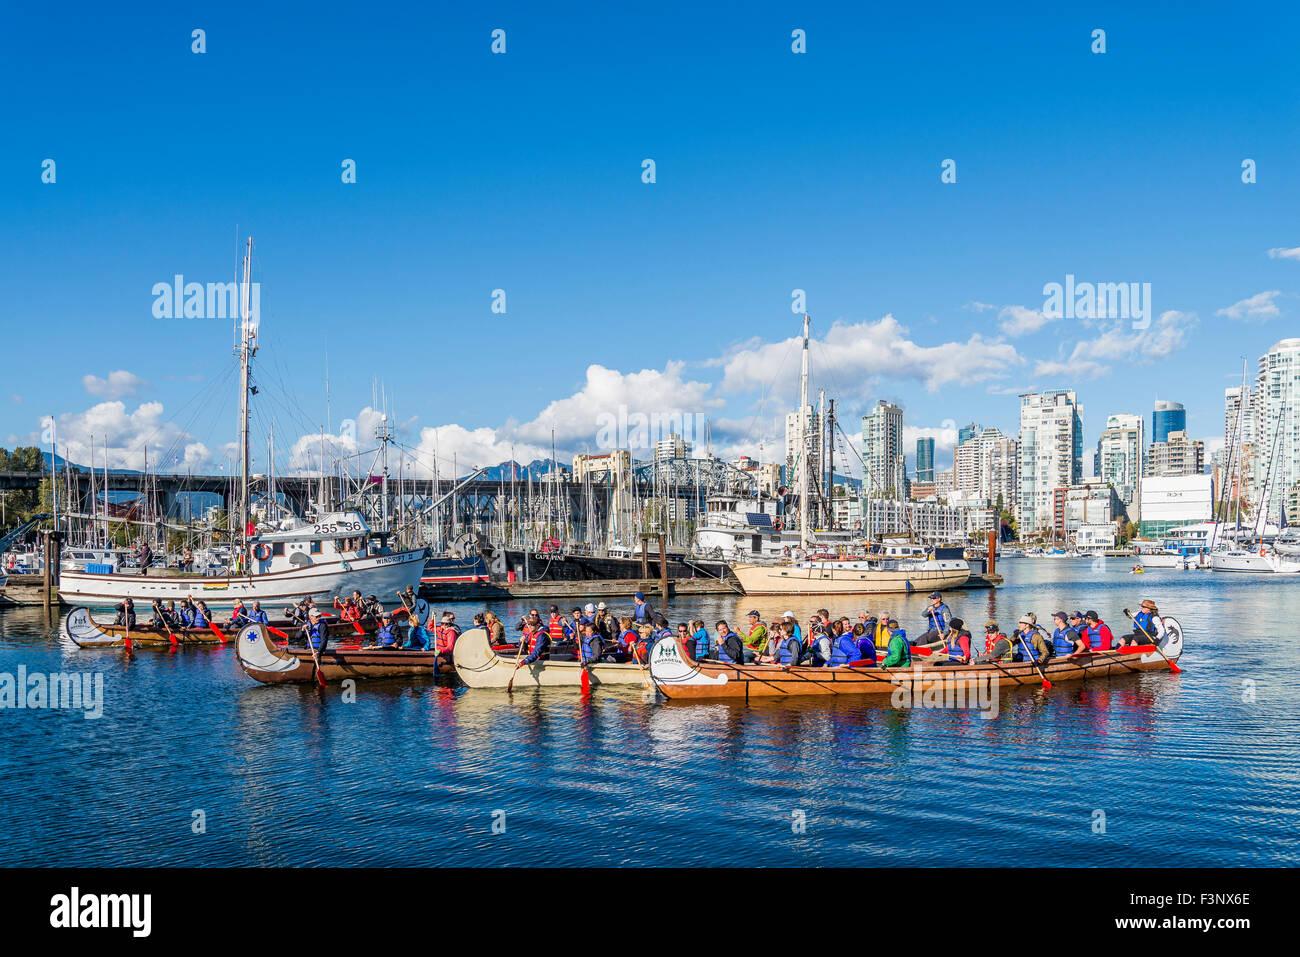 Canoes arrive at Fraser Fest, Vancouver, British Columbia, Canada, - Stock Image